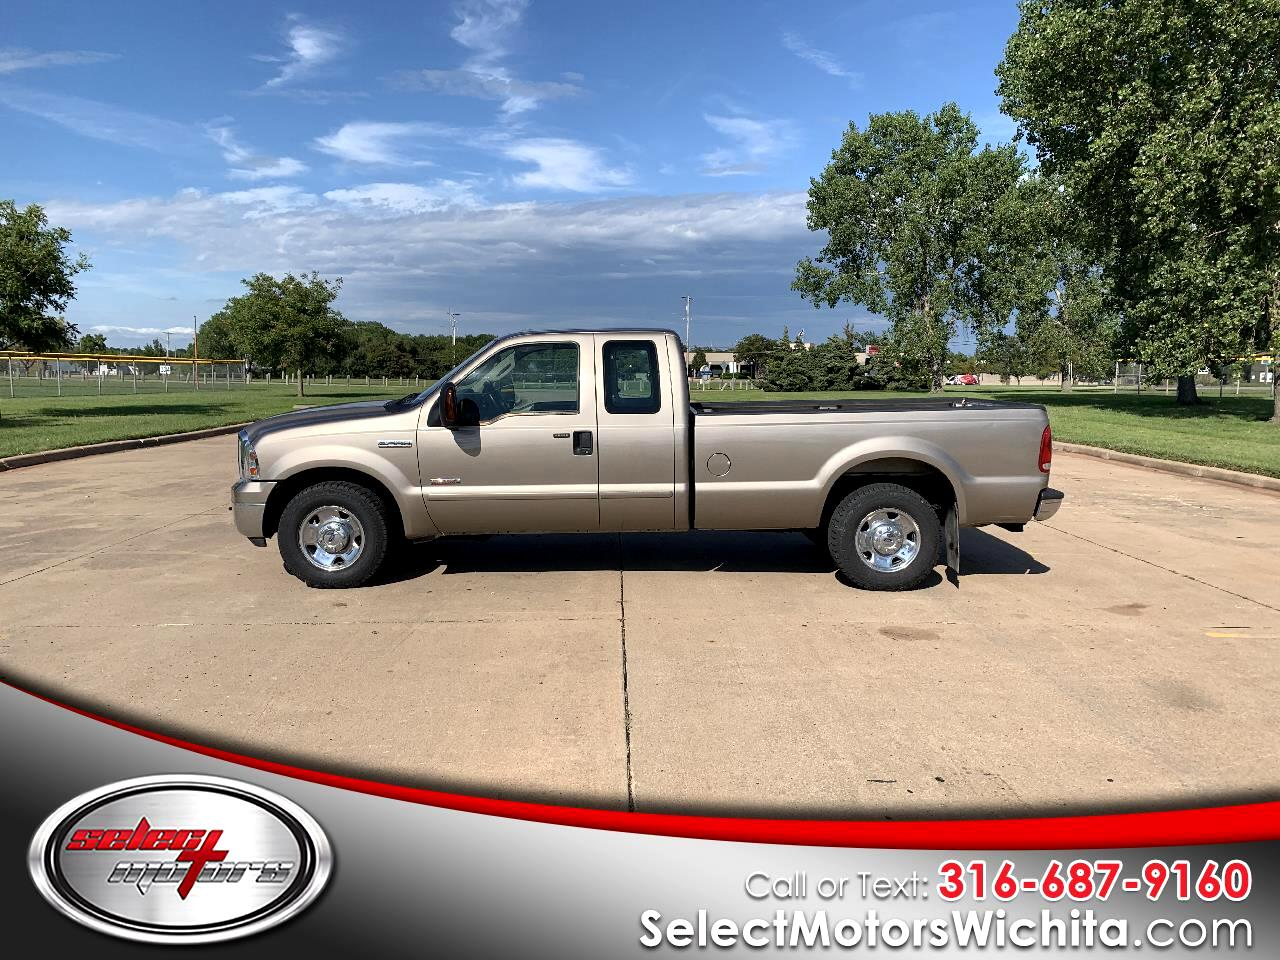 2006 Ford Super Duty F-250 2WD Crew Cab 156